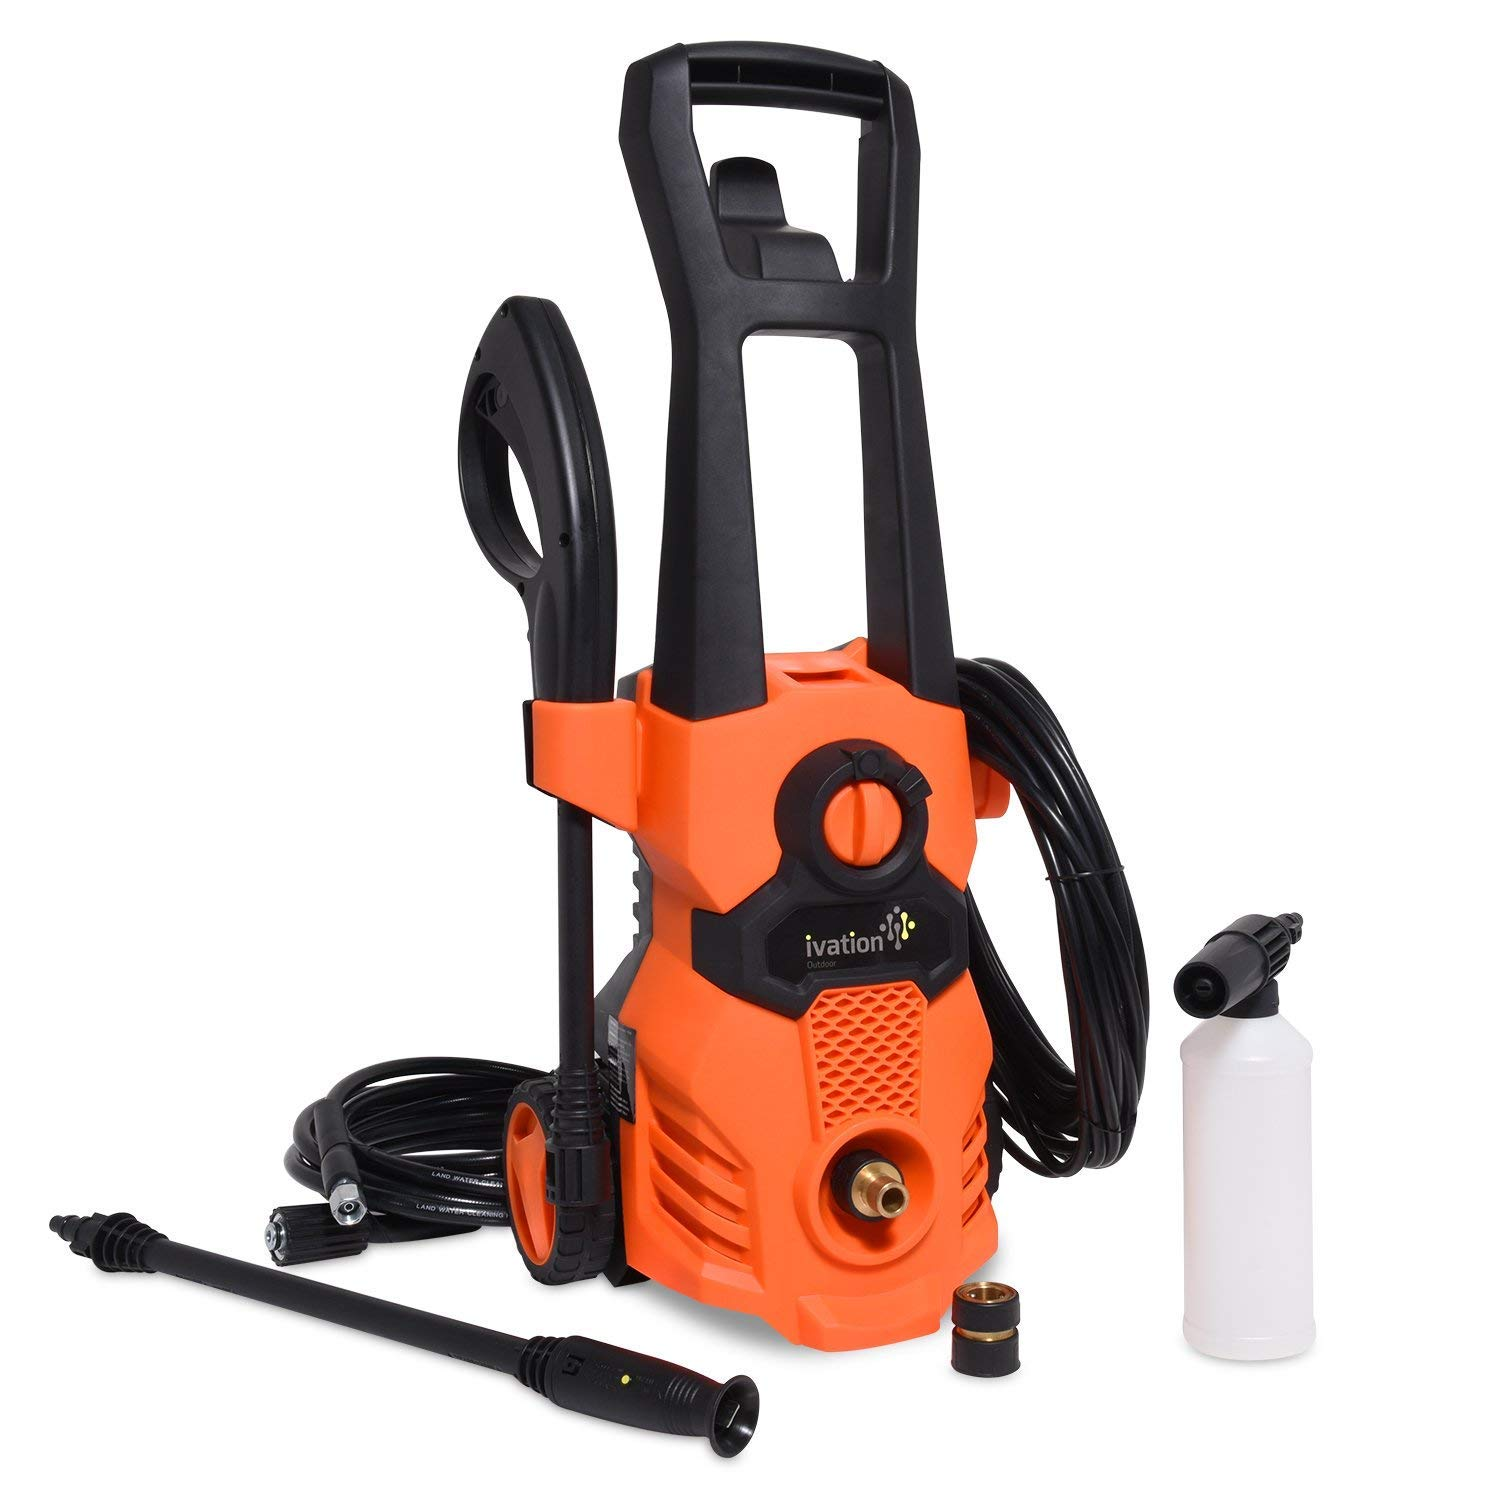 Ivation Electric Power Washer, 1520 PSI 1.32 GPM, 13 Amp, High Power Hose Pressure Washer Cleaner Machine for Cars, Driveways, Floors, Furniture and More, Small Model